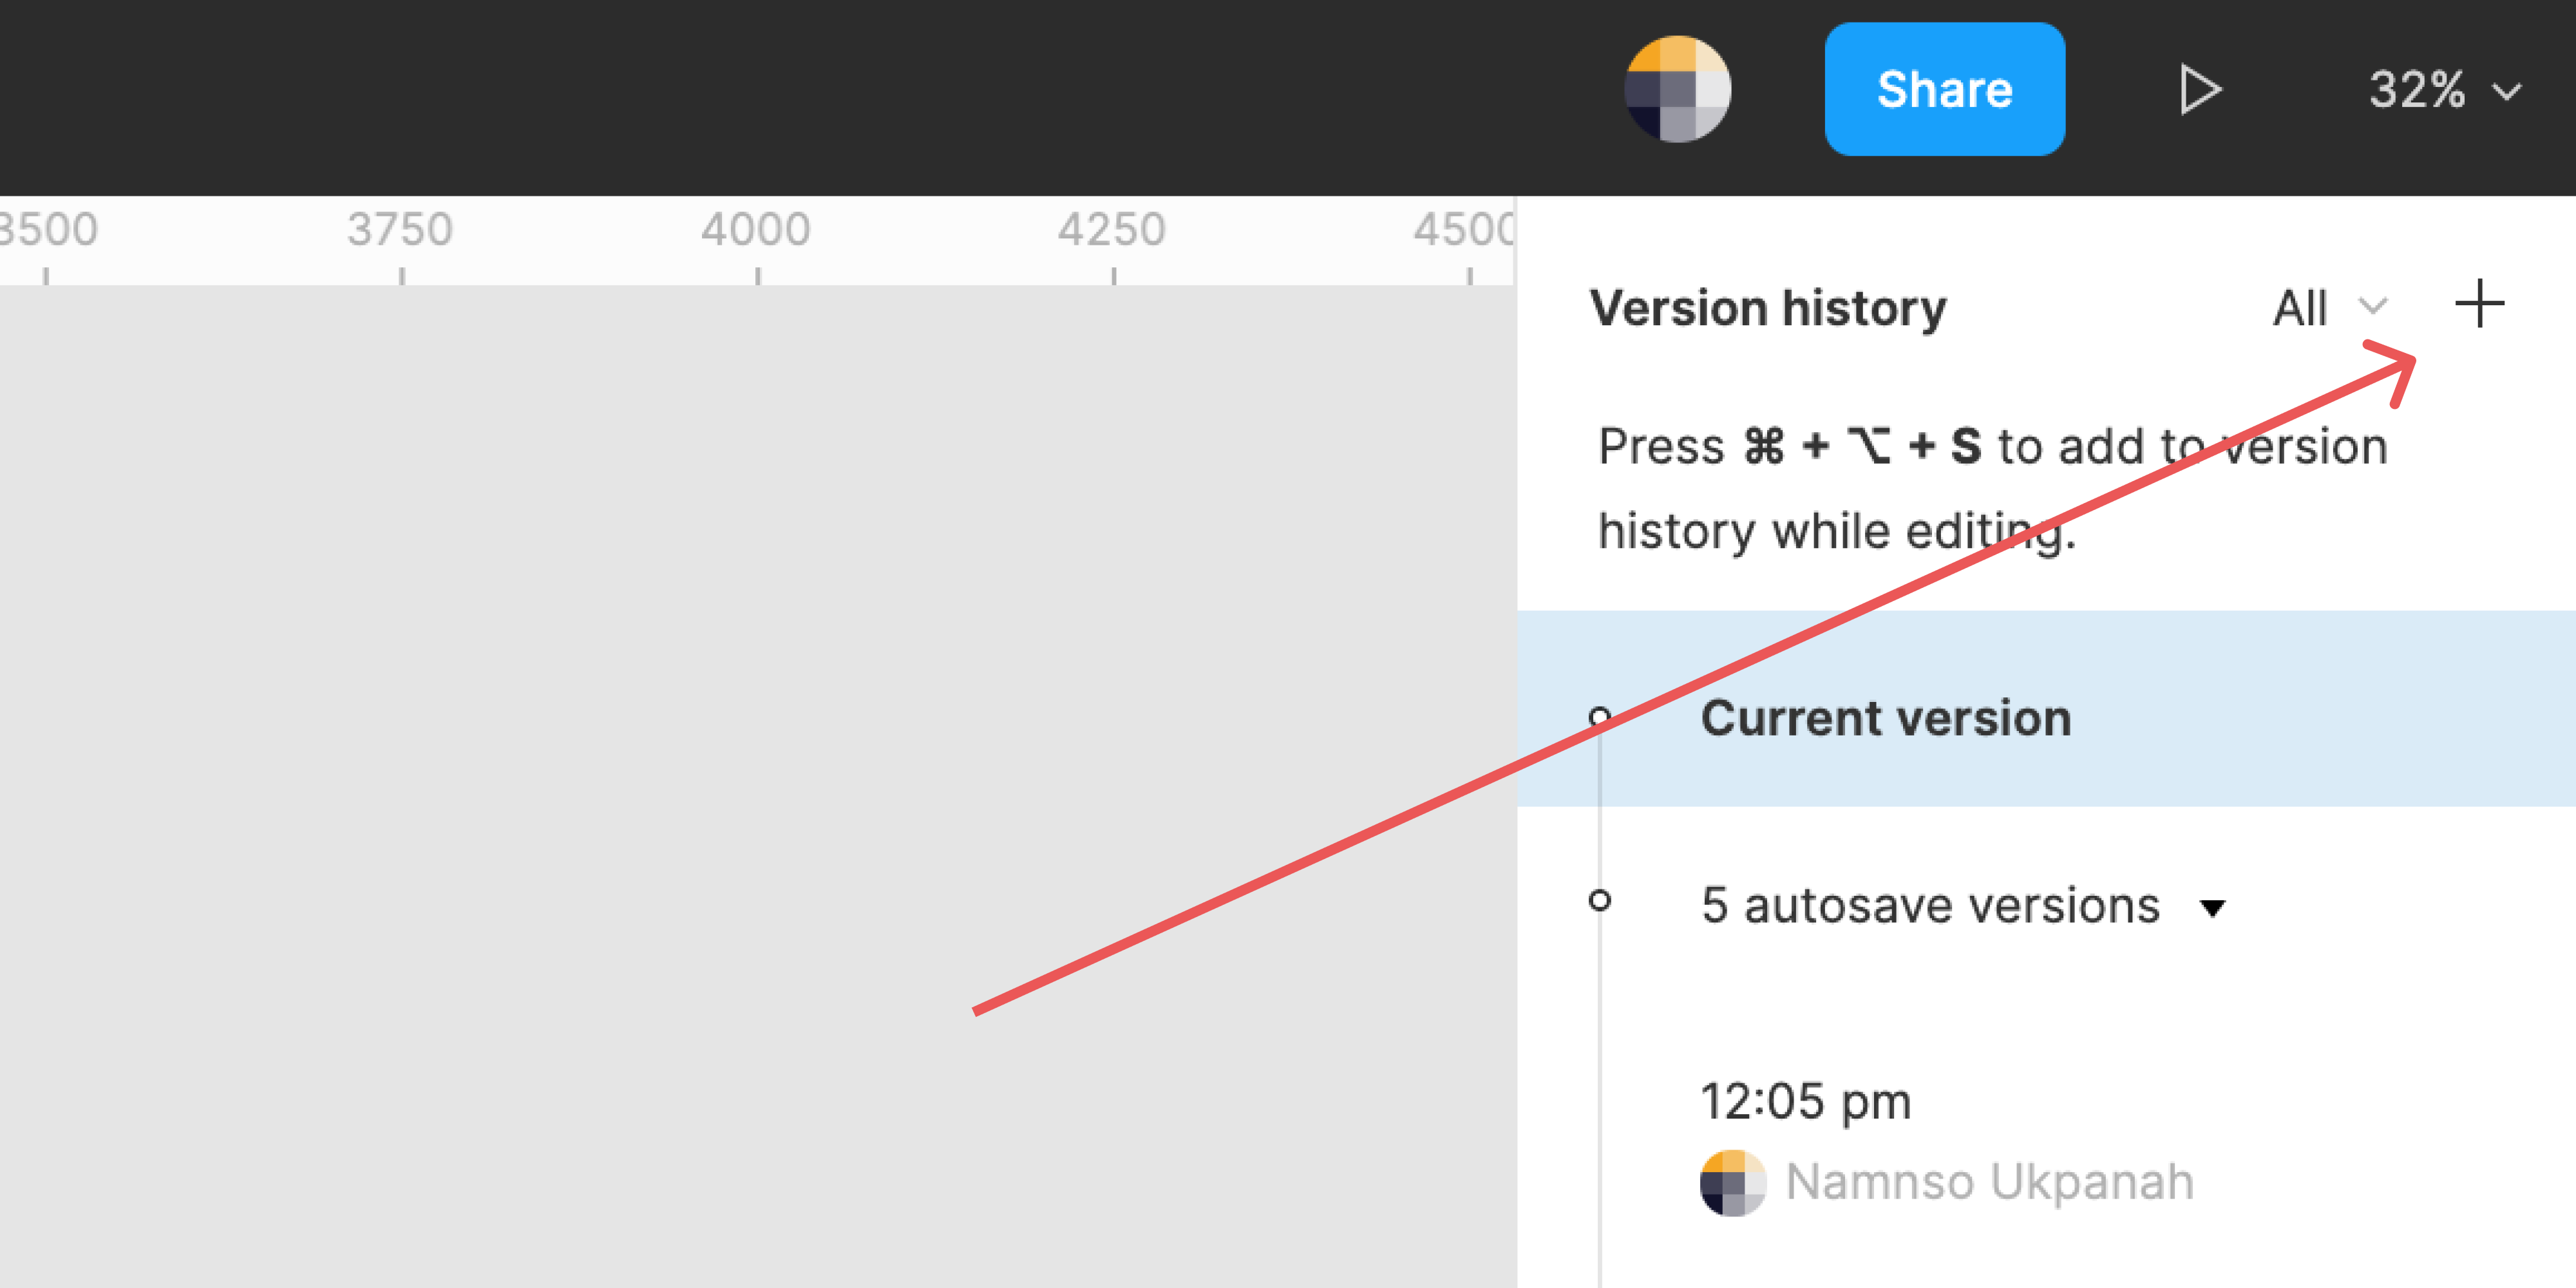 You can manually add a version history